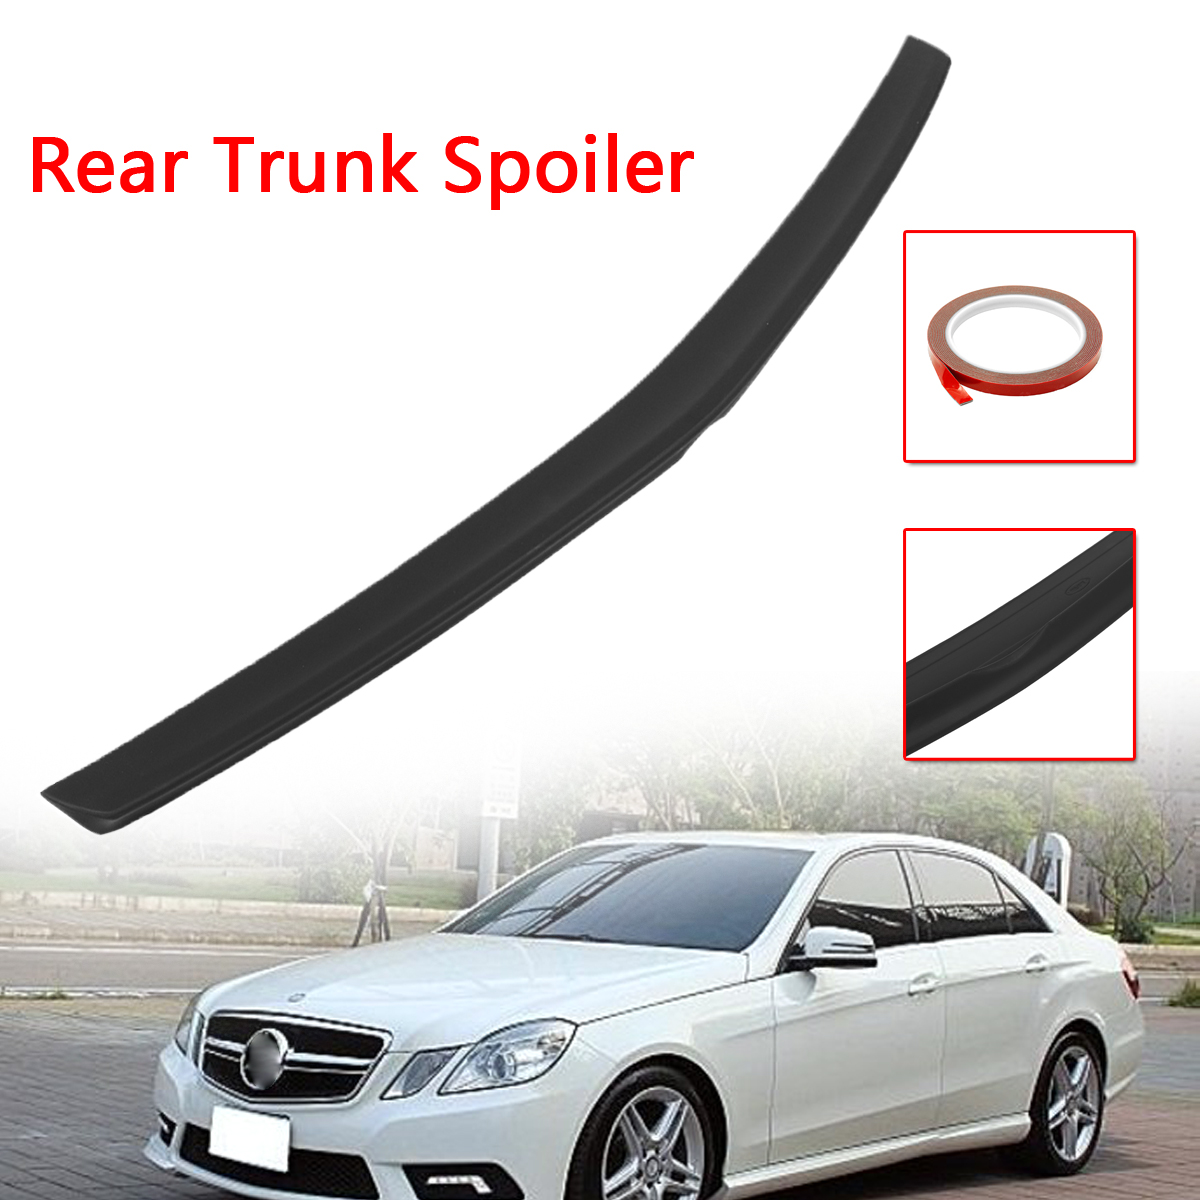 Car Unpainted Rear Trunk Spoiler Wing Boot Lid Spoiler Plastic For Mercedes-Benz E Class W212 for AMG 2009-2018Car Unpainted Rear Trunk Spoiler Wing Boot Lid Spoiler Plastic For Mercedes-Benz E Class W212 for AMG 2009-2018